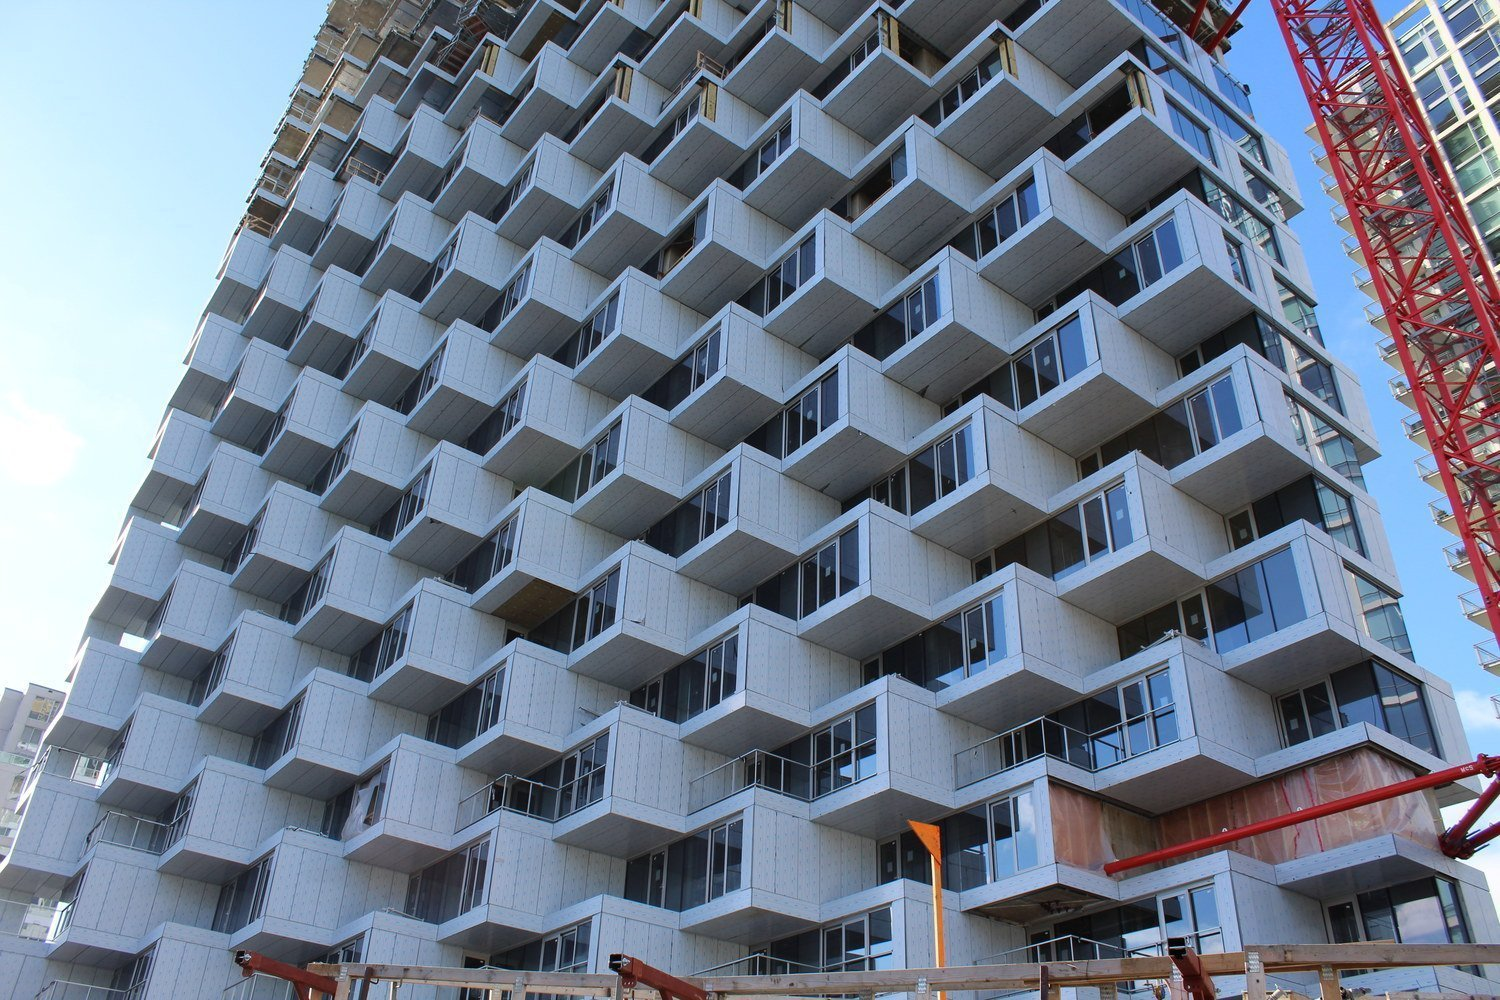 Vancouver House architecture Bjarke Ingels Westbank February 2018